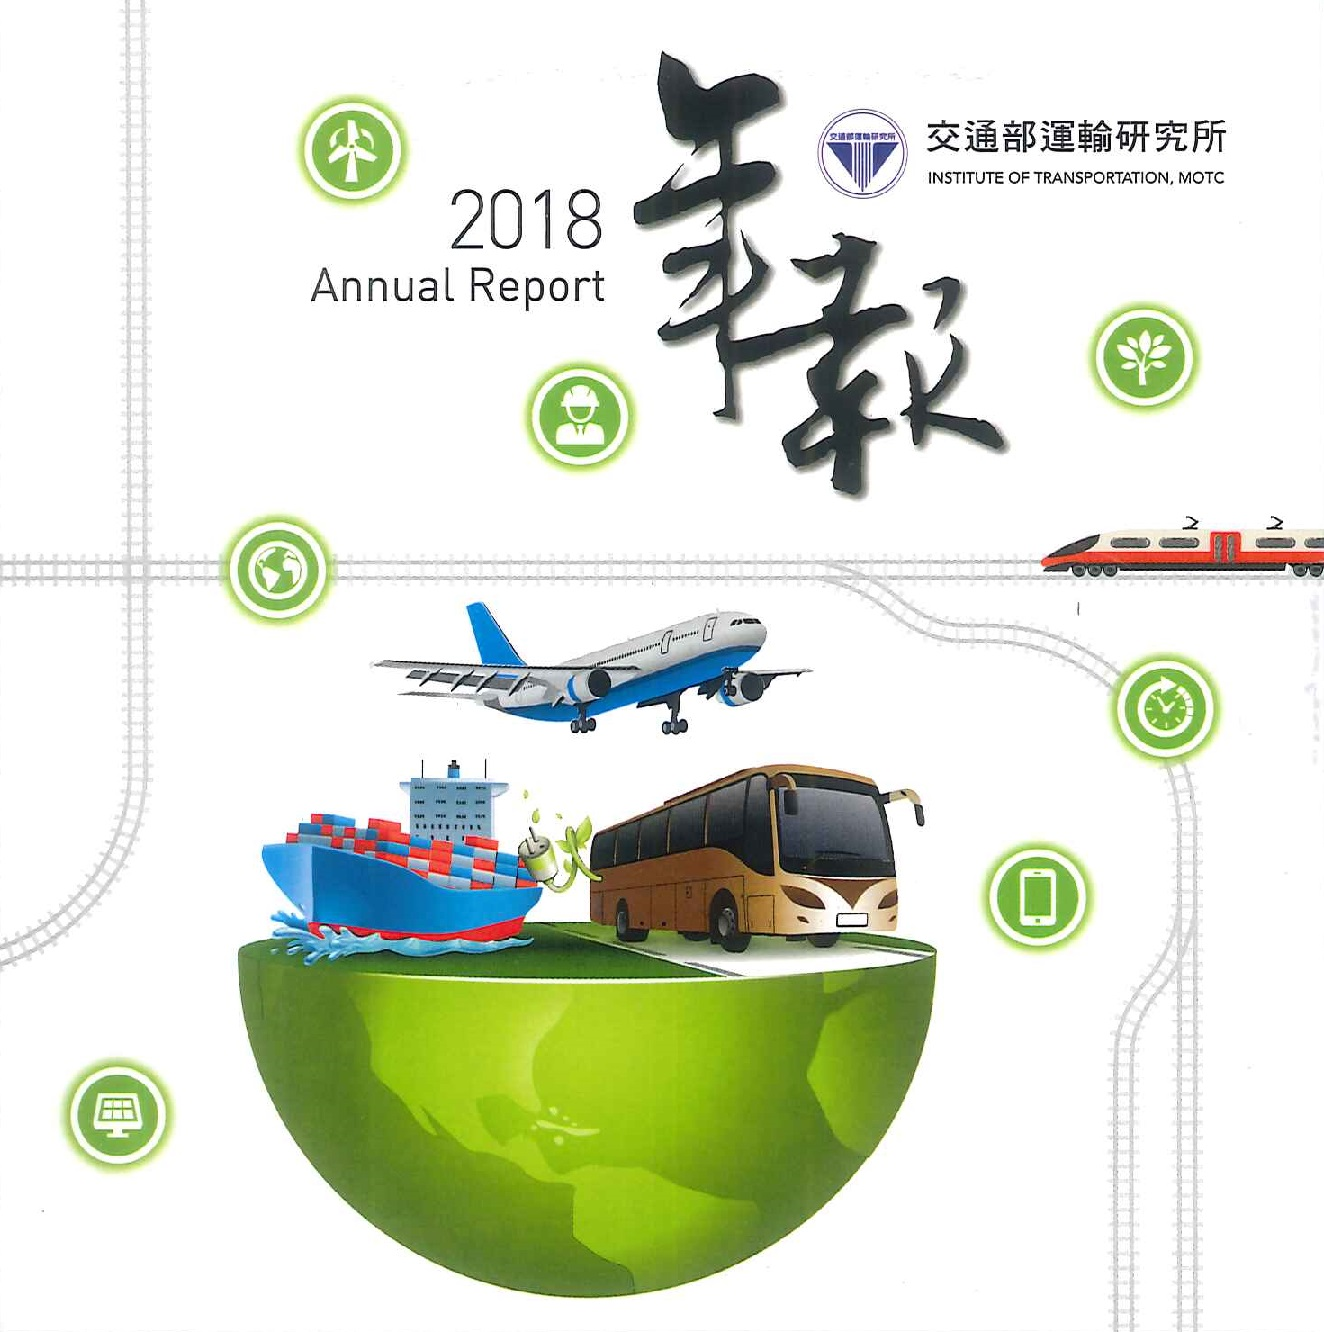 交通部運輸研究所年報=Annual report, Institute of Transportation